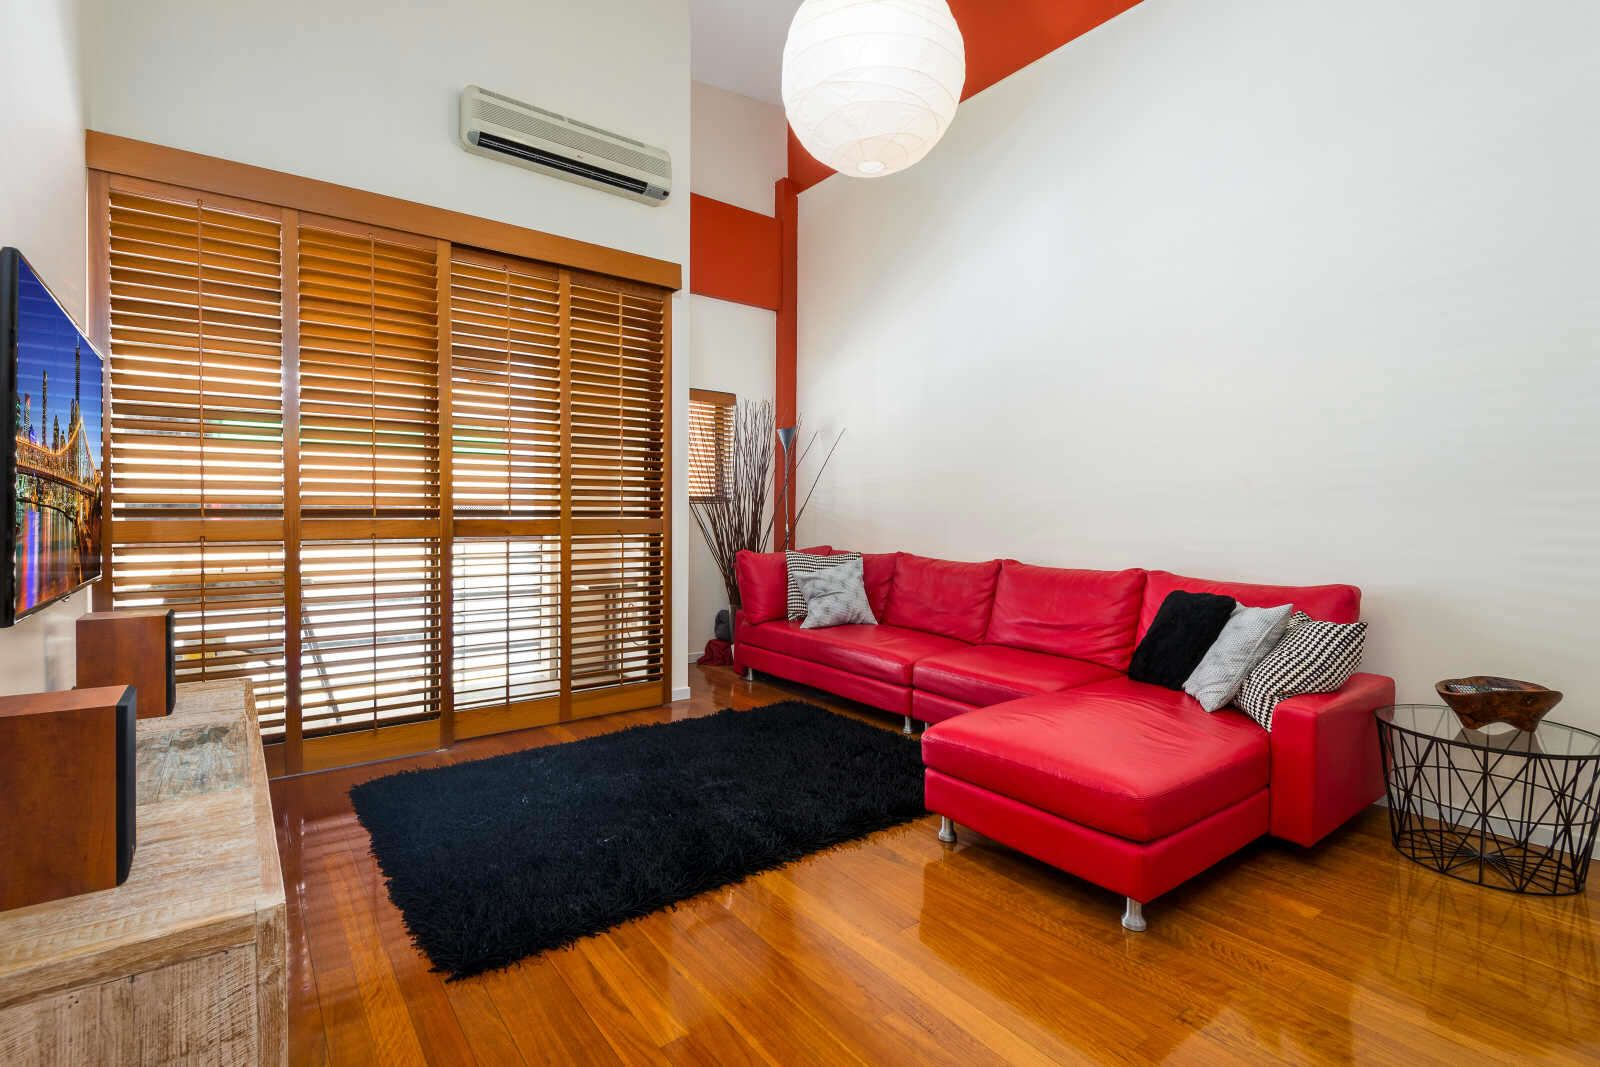 17/27 Ballow Street, Fortitude Valley QLD 4006, Image 2